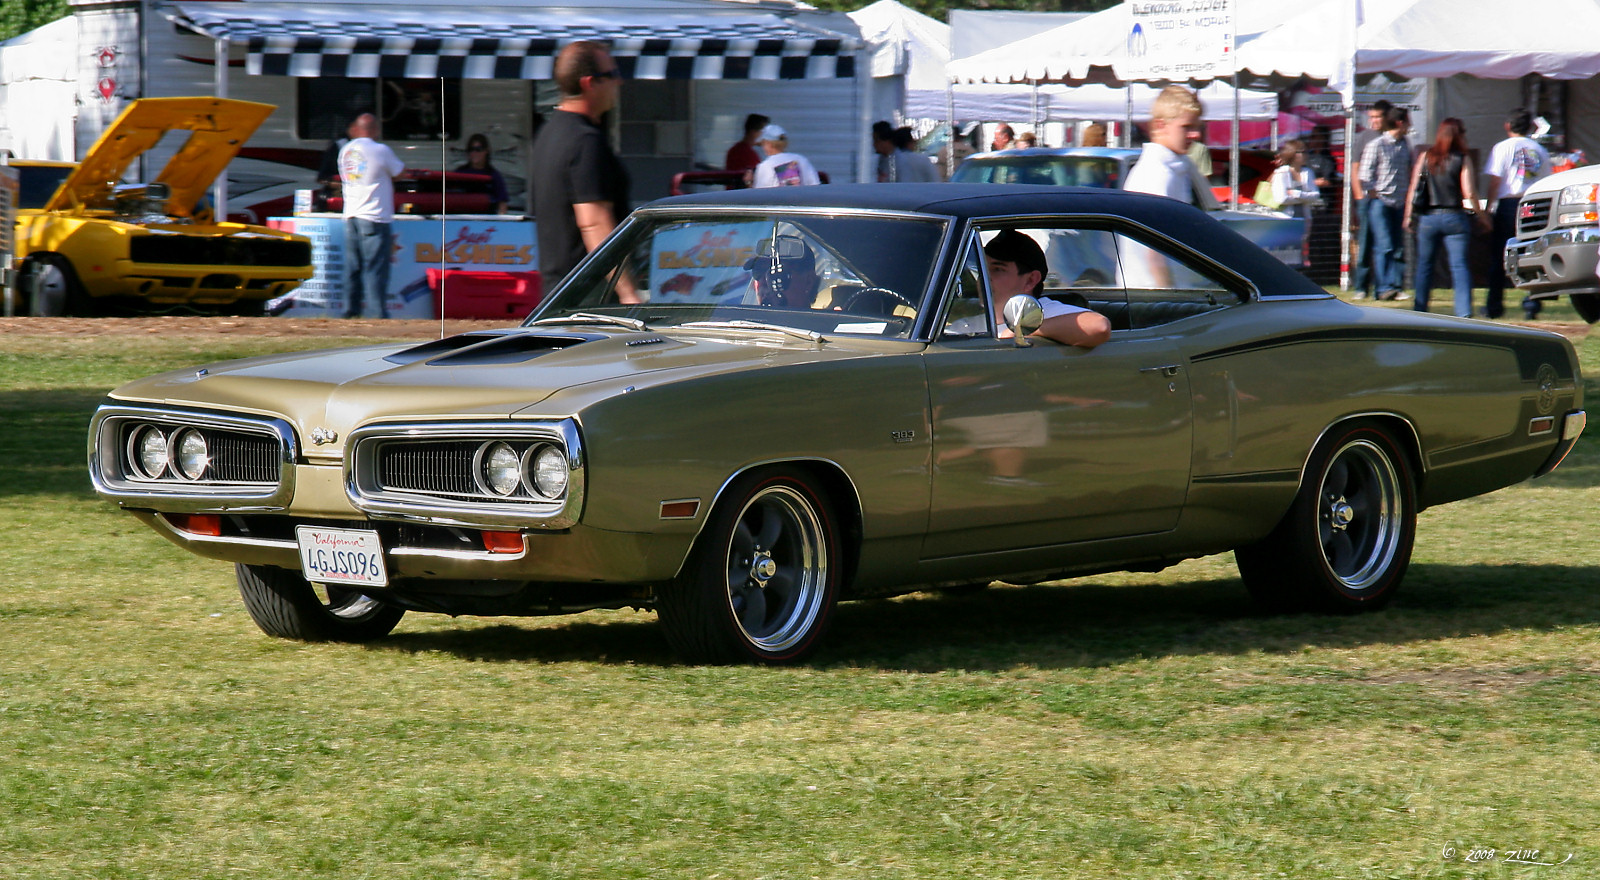 1970 Dodge Super Bee  green  fvl by Rex Gray via Flickr  The